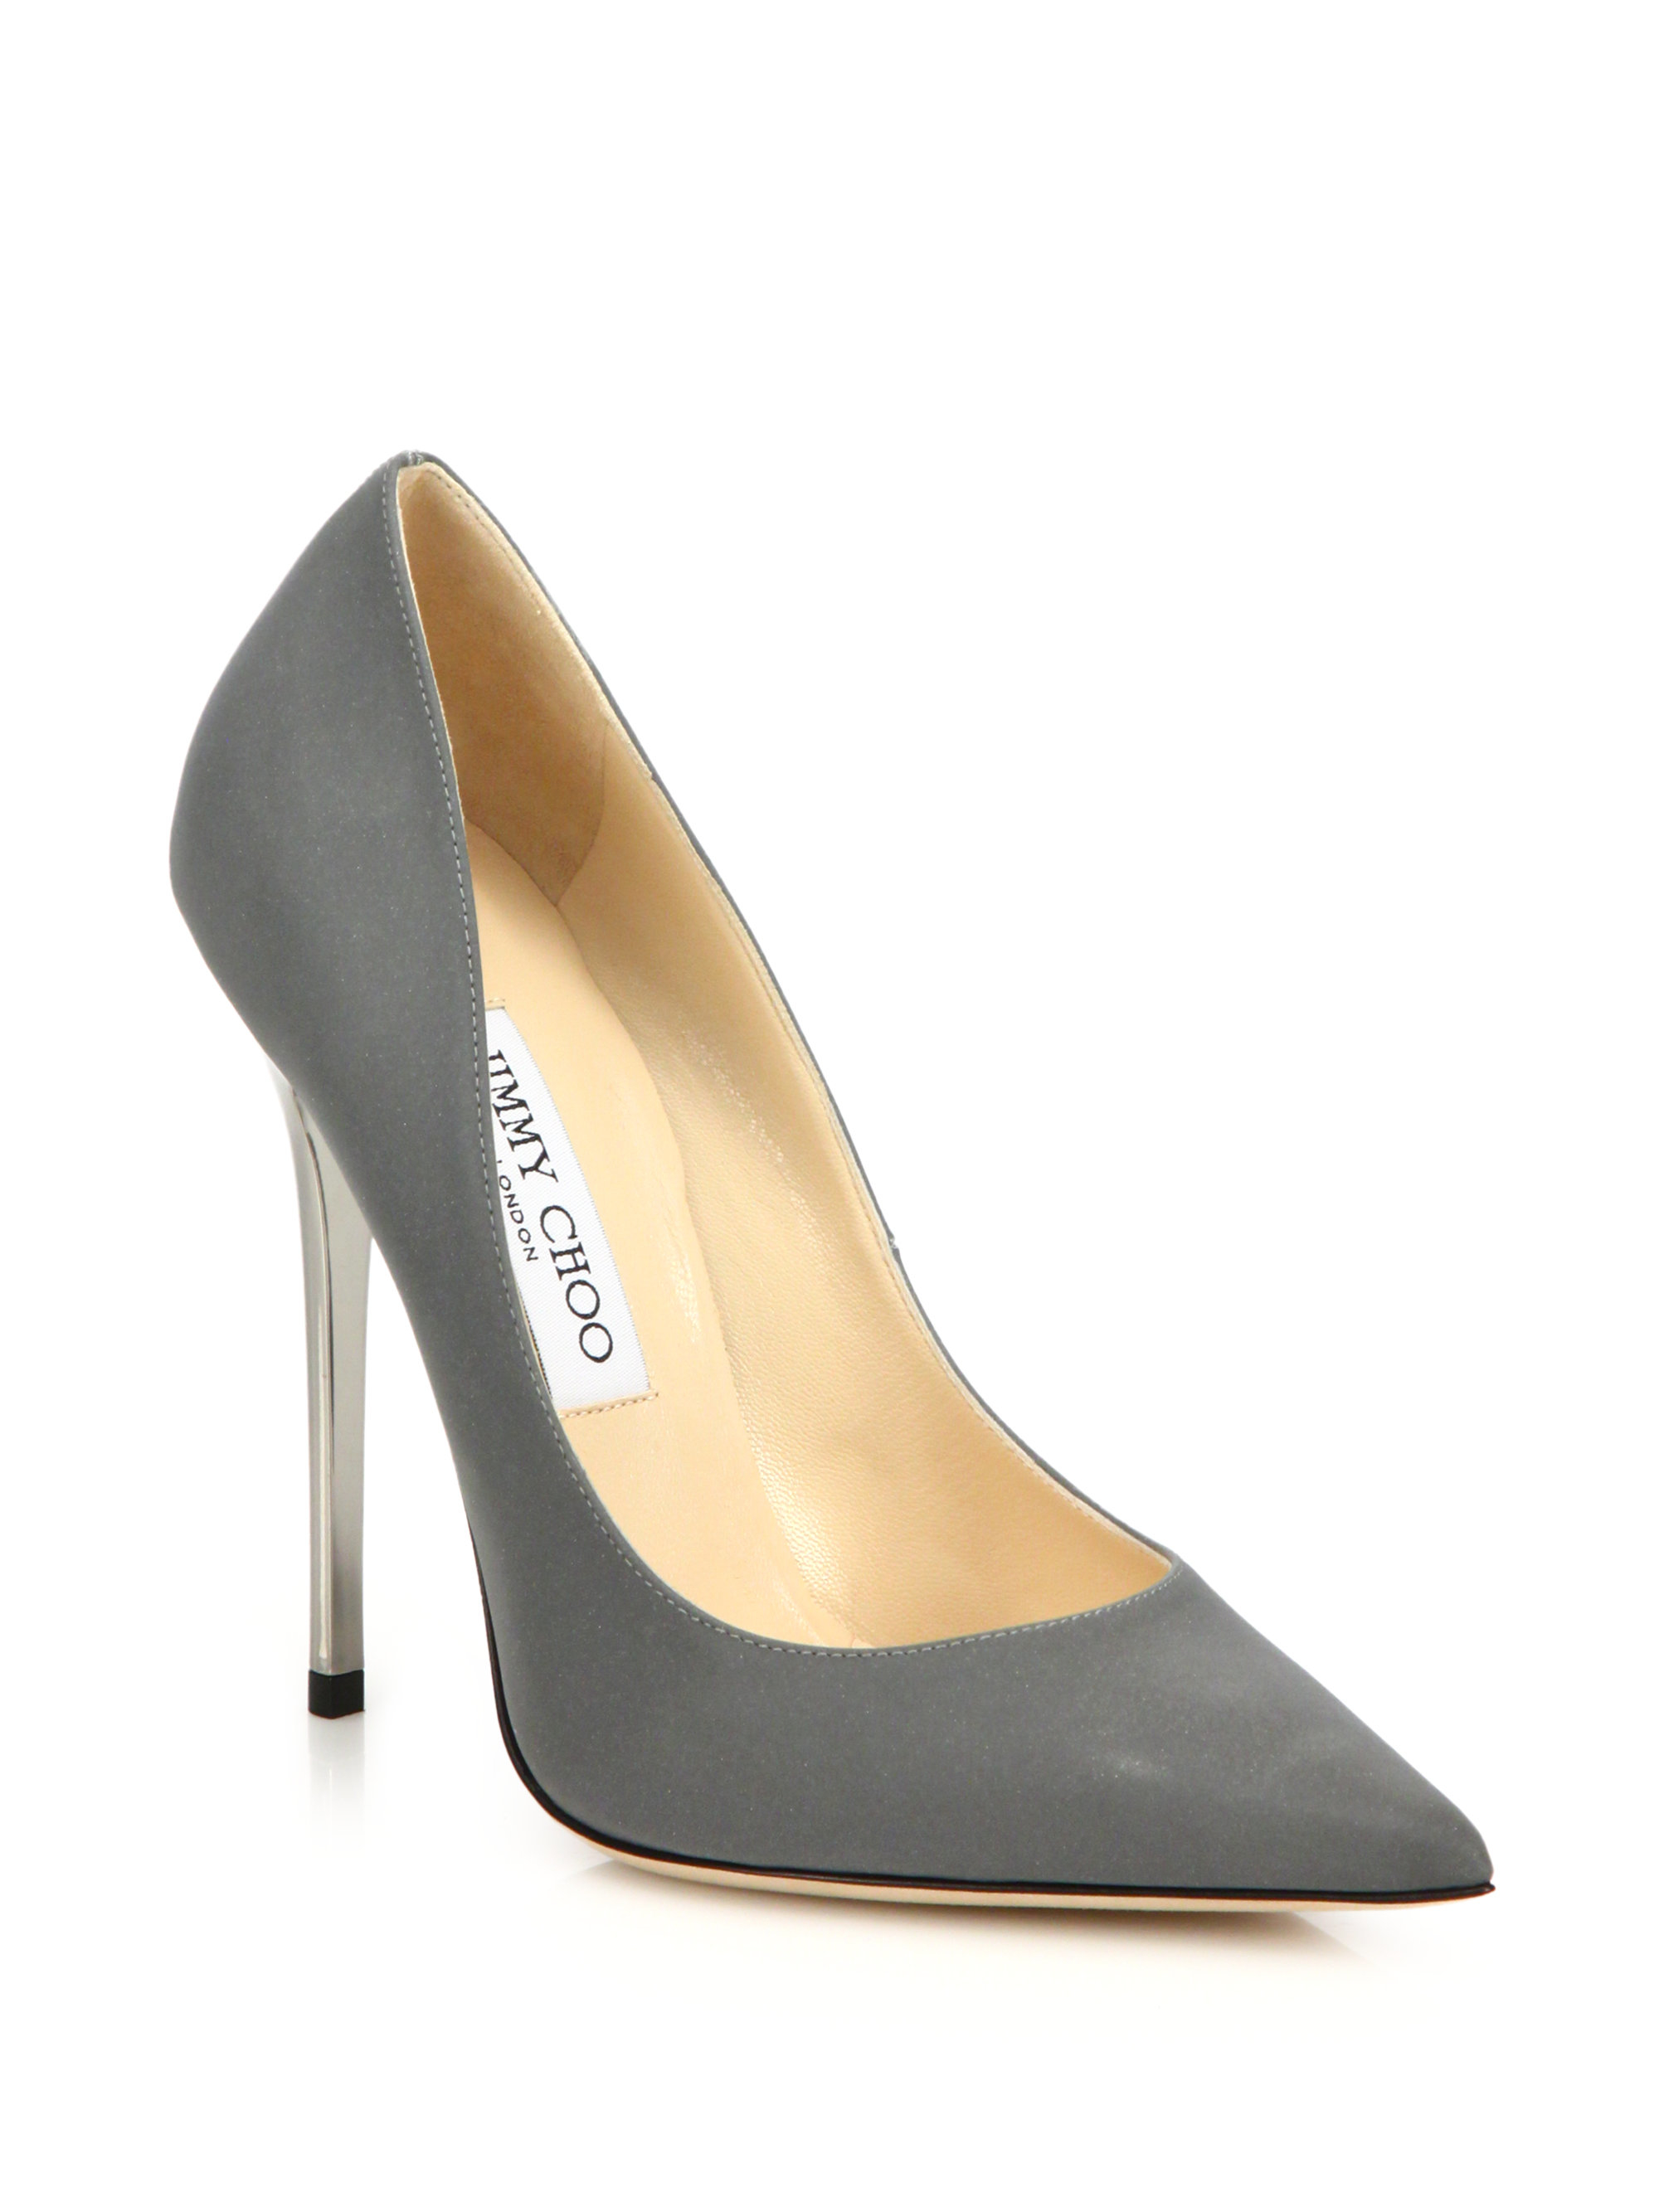 Find great deals on eBay for grey pump shoes. Shop with confidence.